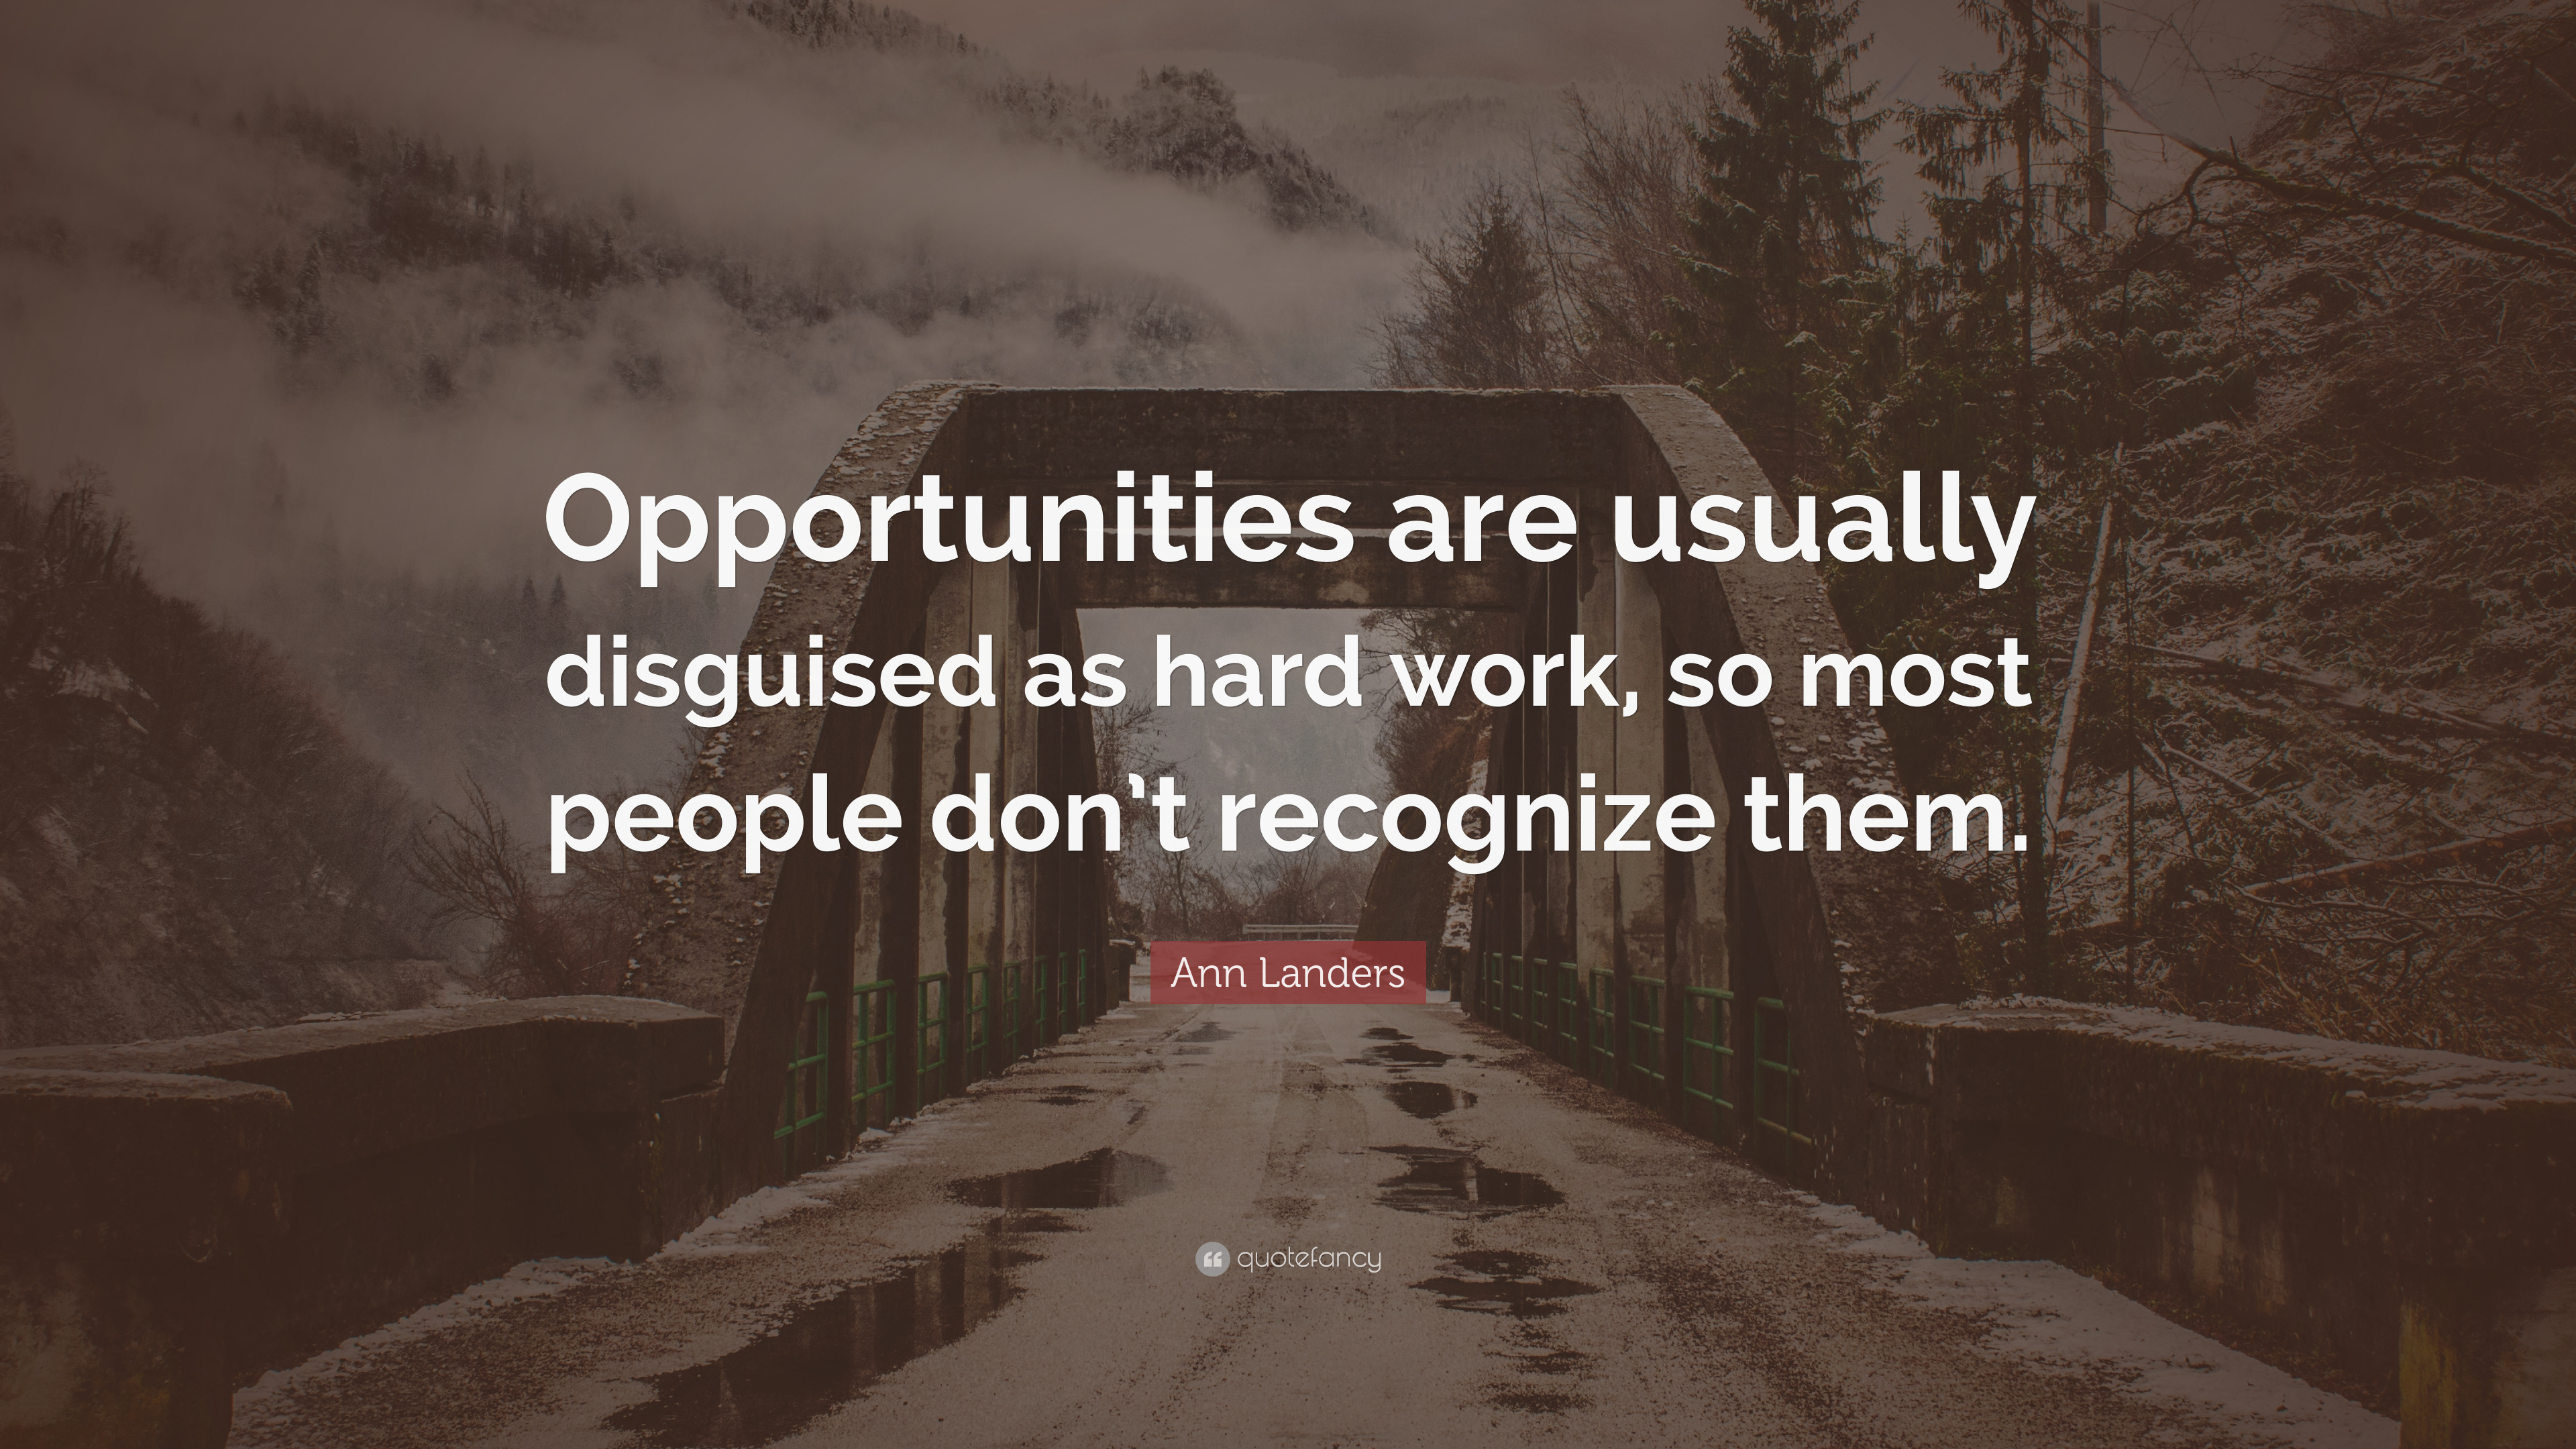 Most Beautiful Wallpapers With Quotes Ann Landers Quote Opportunities Are Usually Disguised As